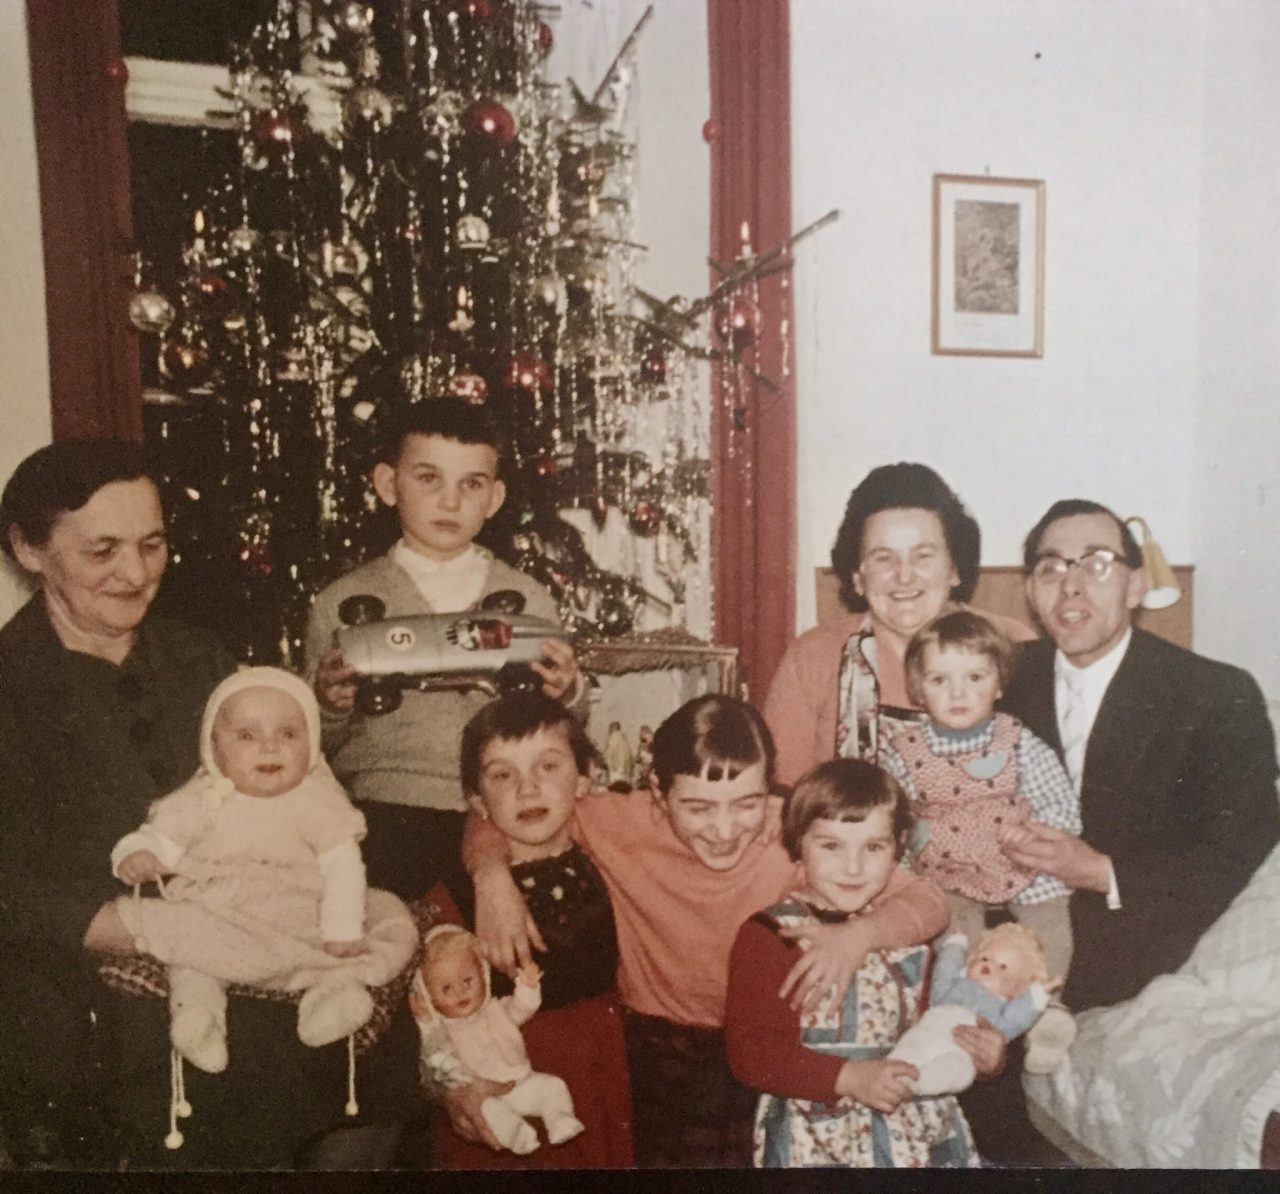 Weihnachten, German Christmas with Family 1960